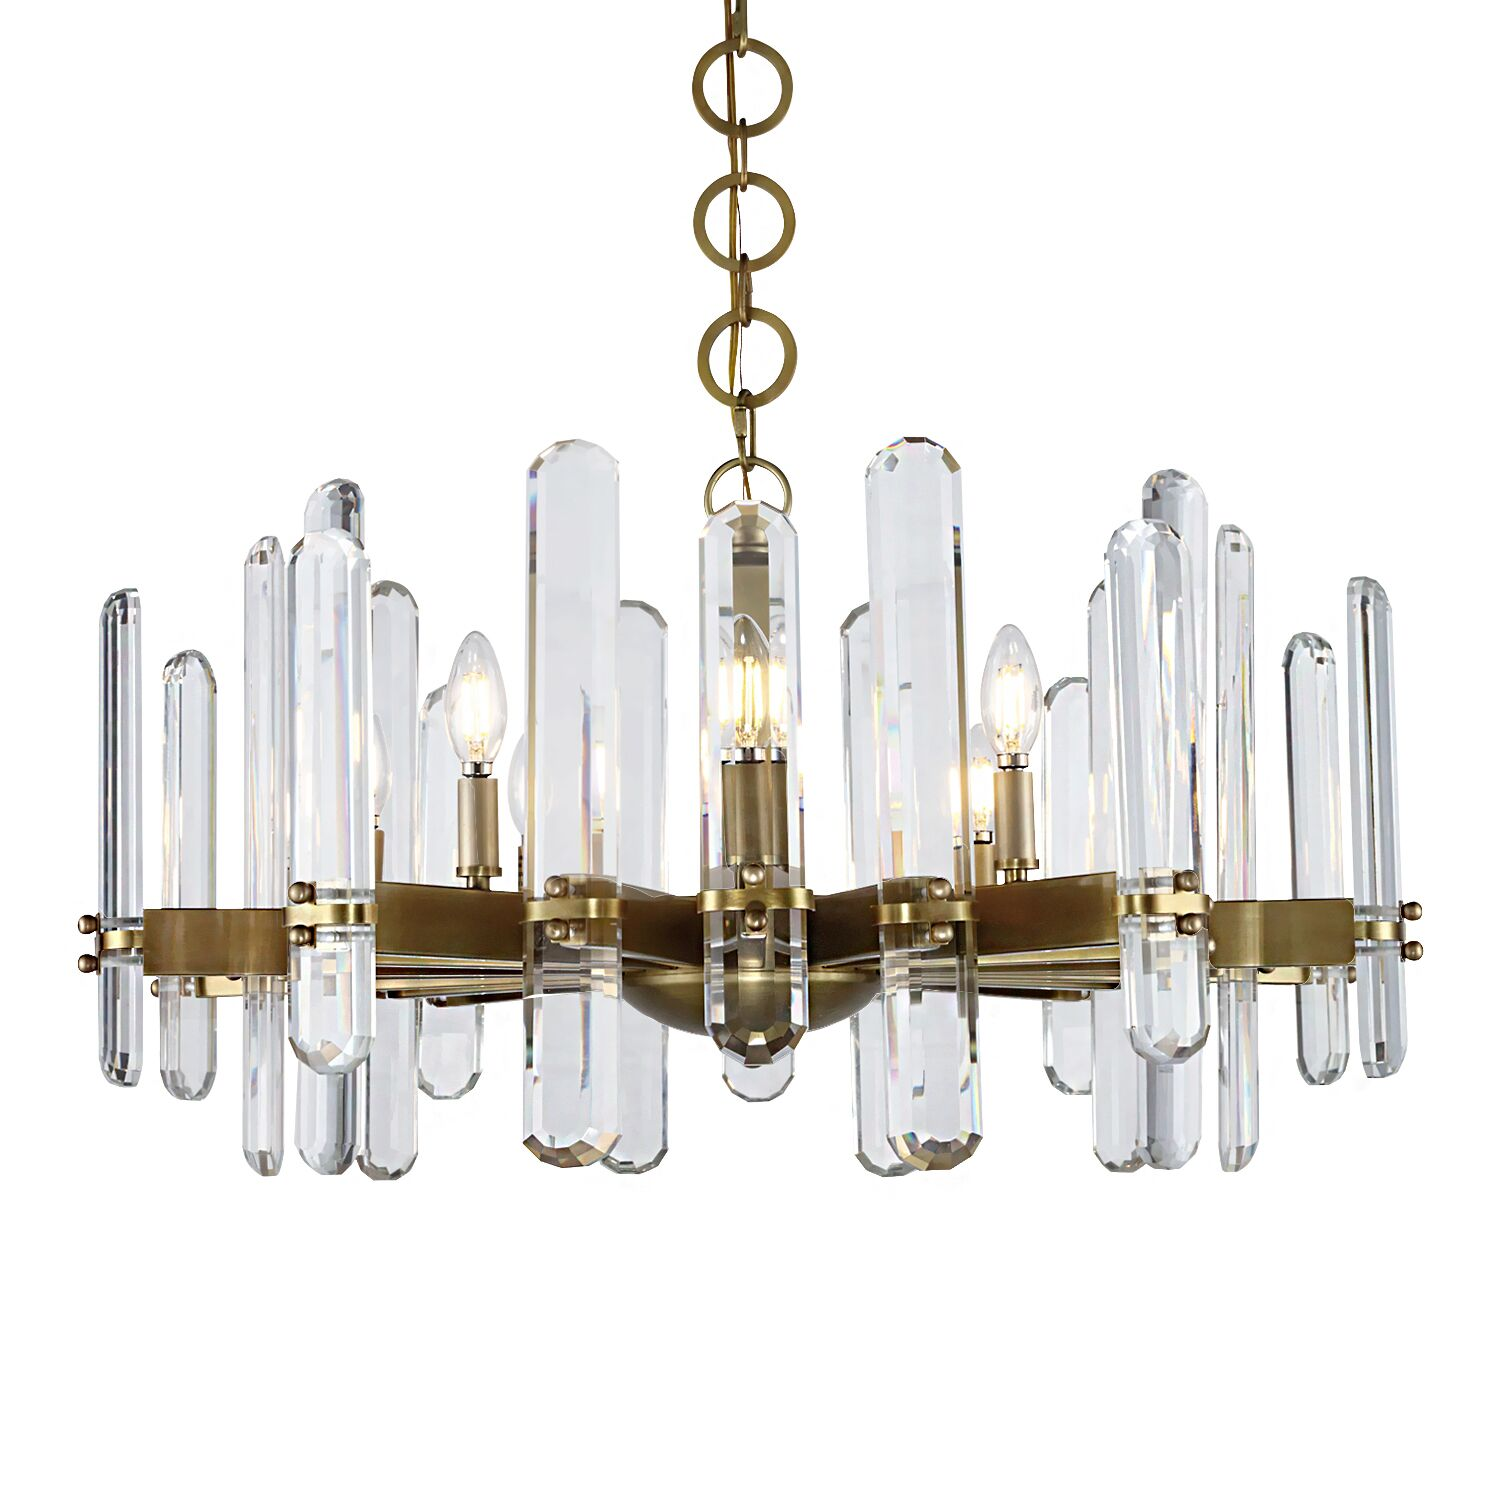 Gent 10-Light Chandelier Finish: Burnished Brass